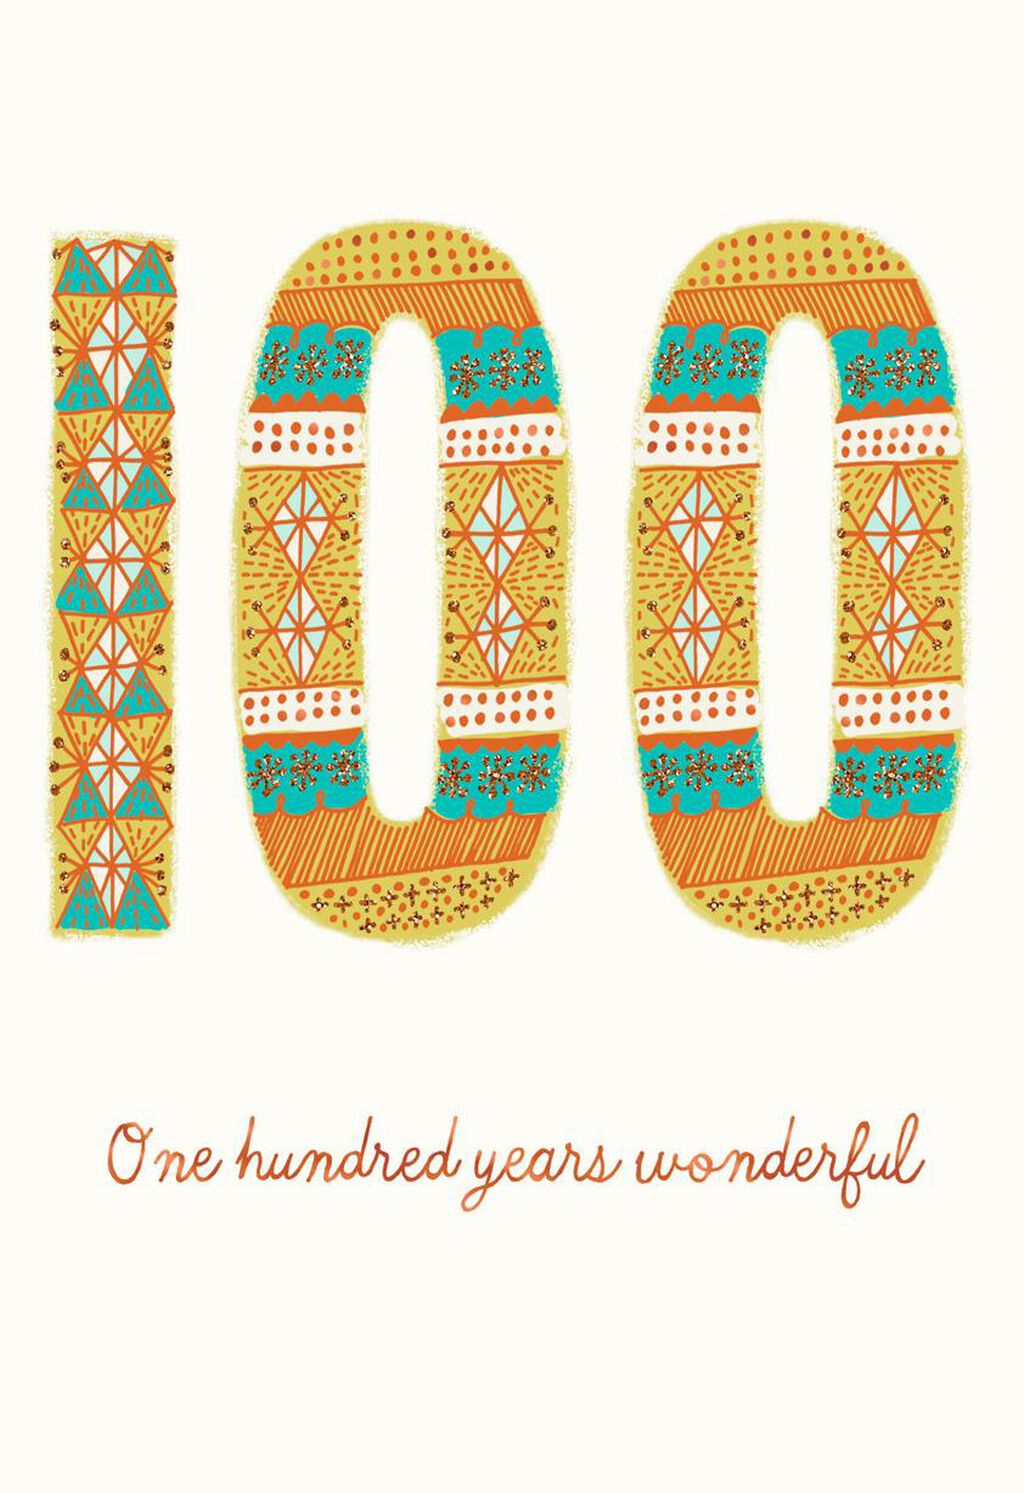 100 Years Wonderful 100th Birthday Card